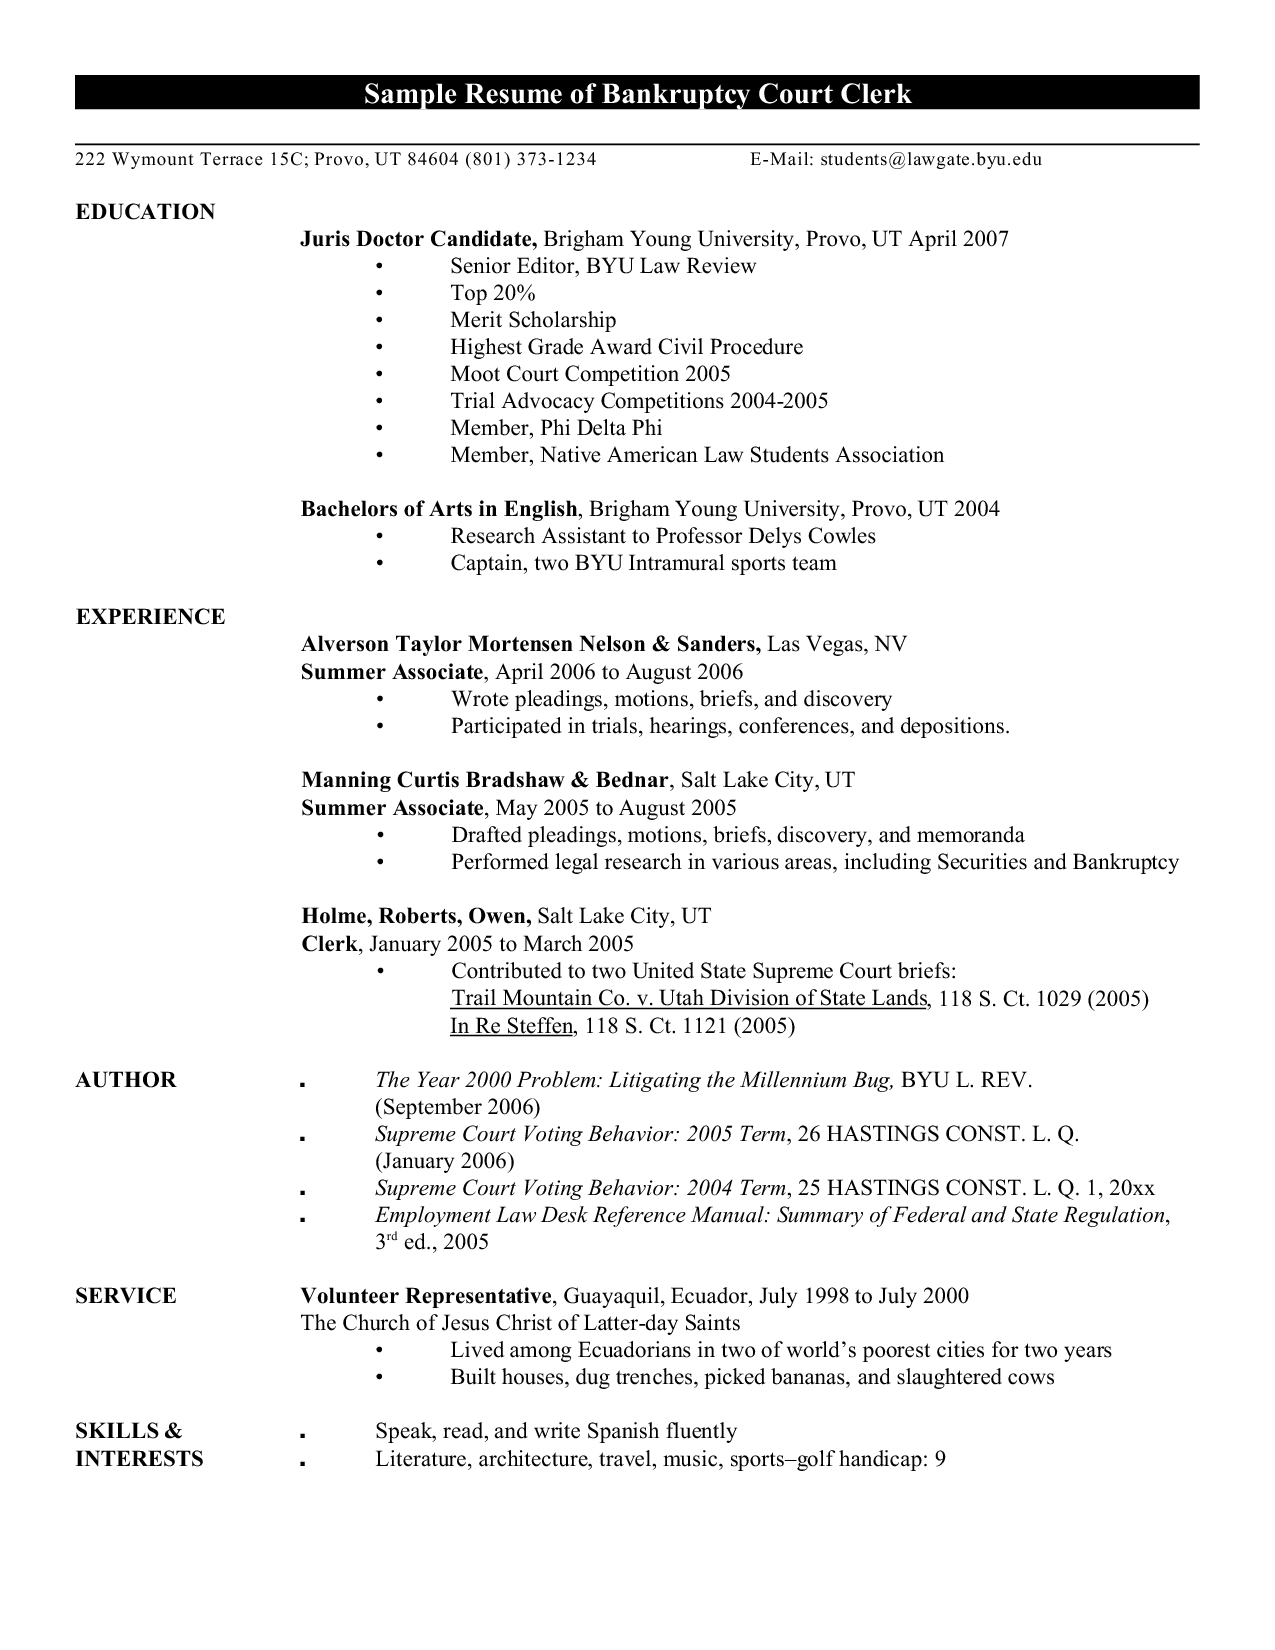 Resume Examples Me Nbspthis Website Is For Sale Nbspresume Examples Resources And Information Resume Examples Job Resume Examples Good Resume Examples